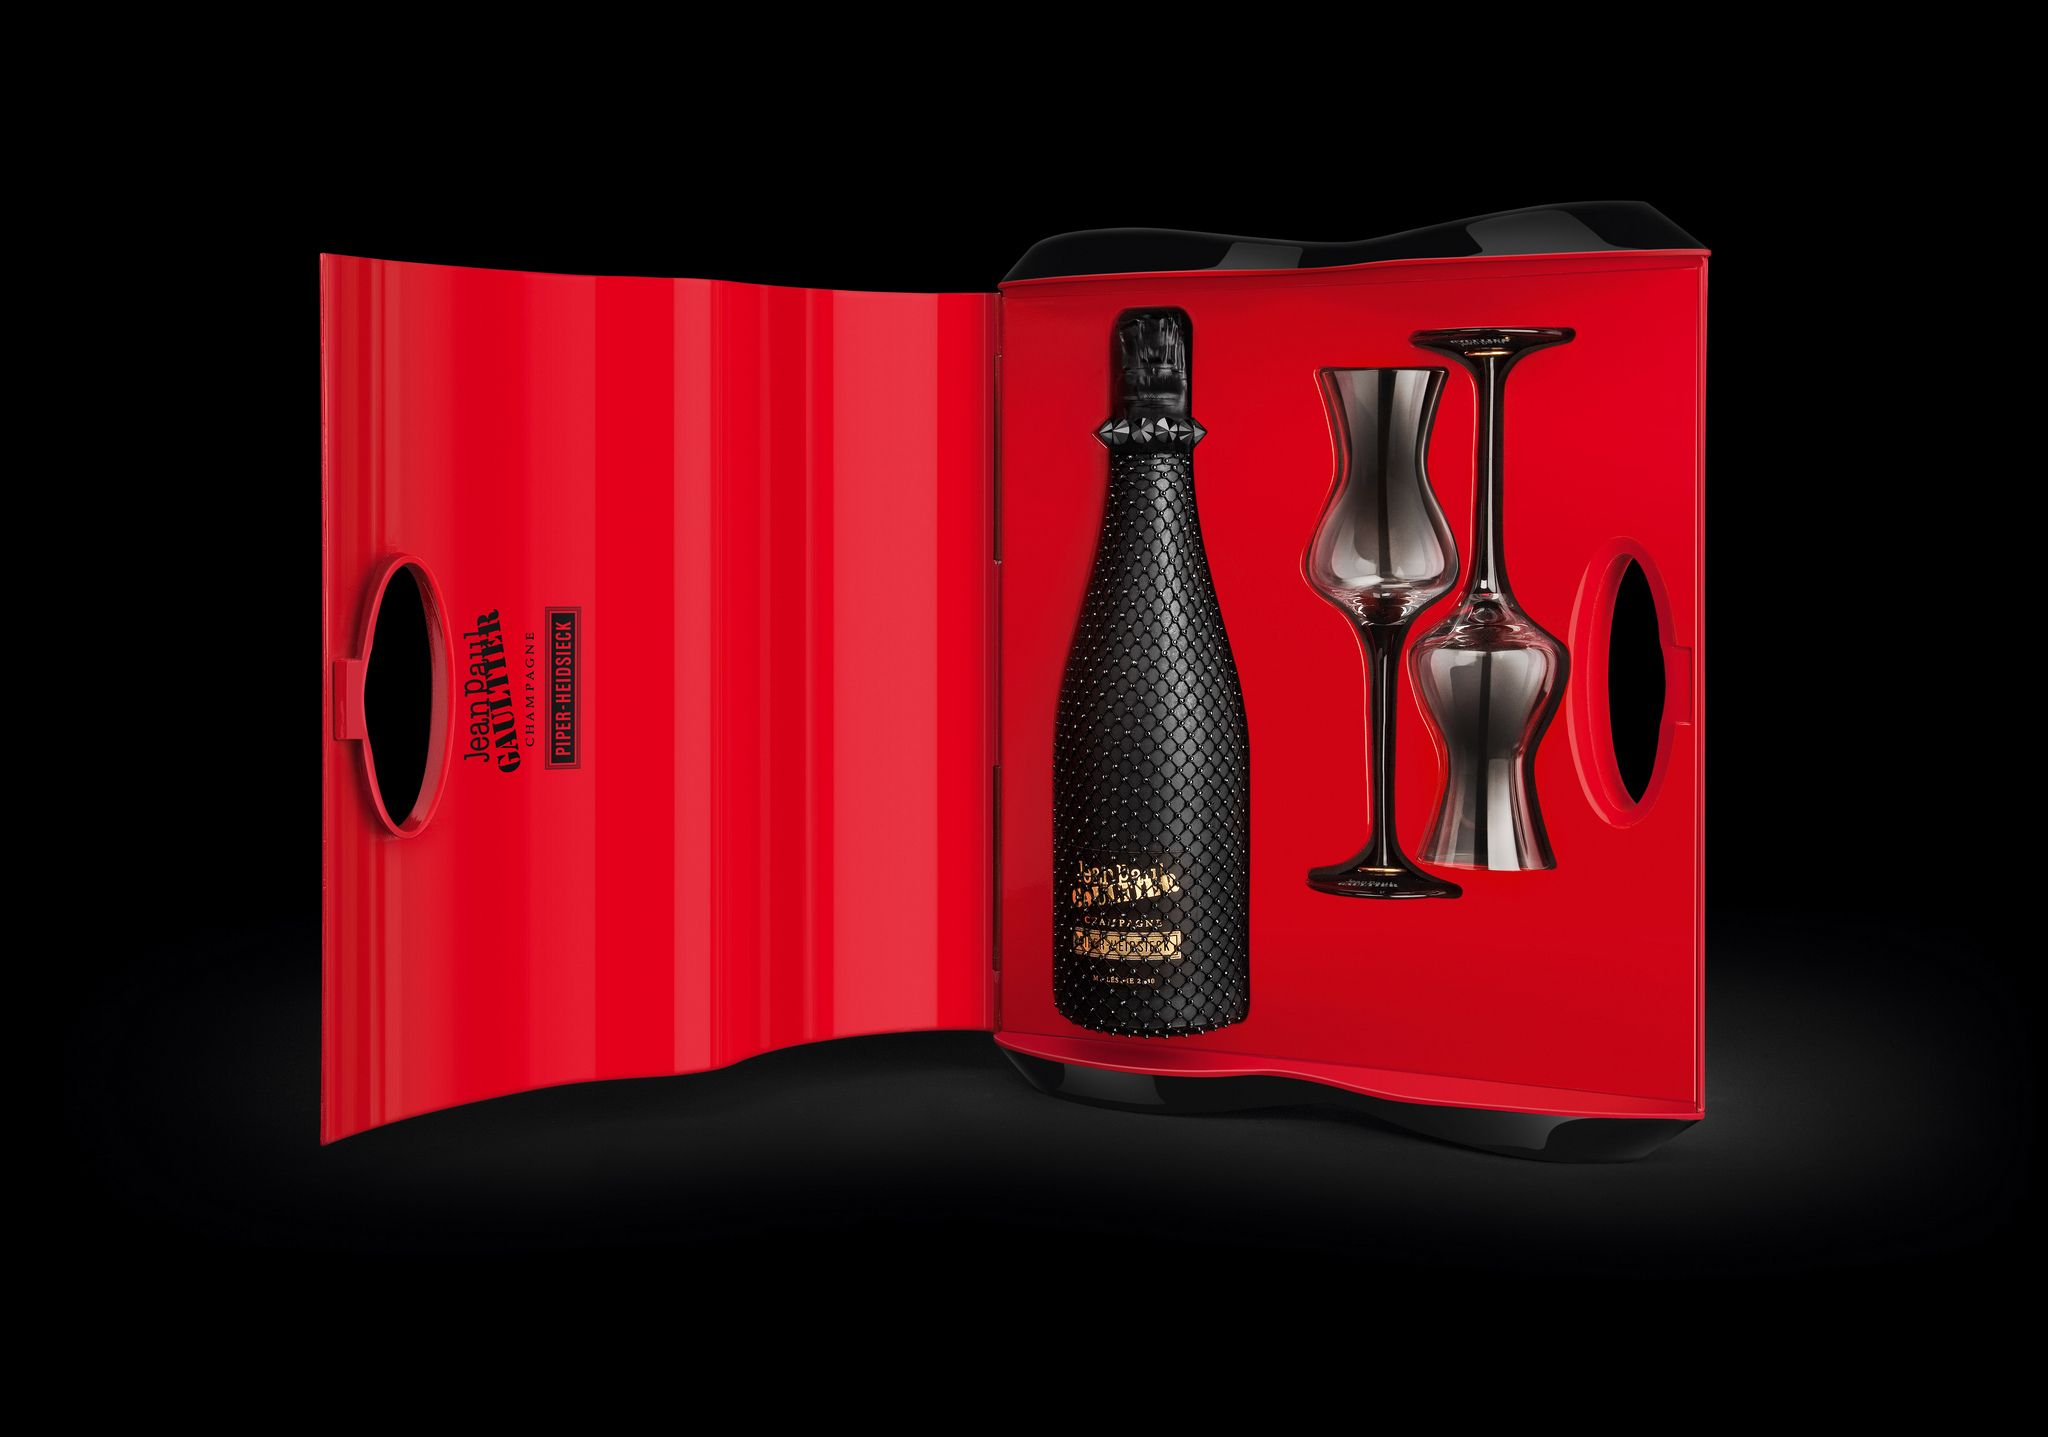 Jean Paul Gaultier Champagne Piper Heidsieck Fine Wine And Spirits Champagne Alcohol Packaging Design